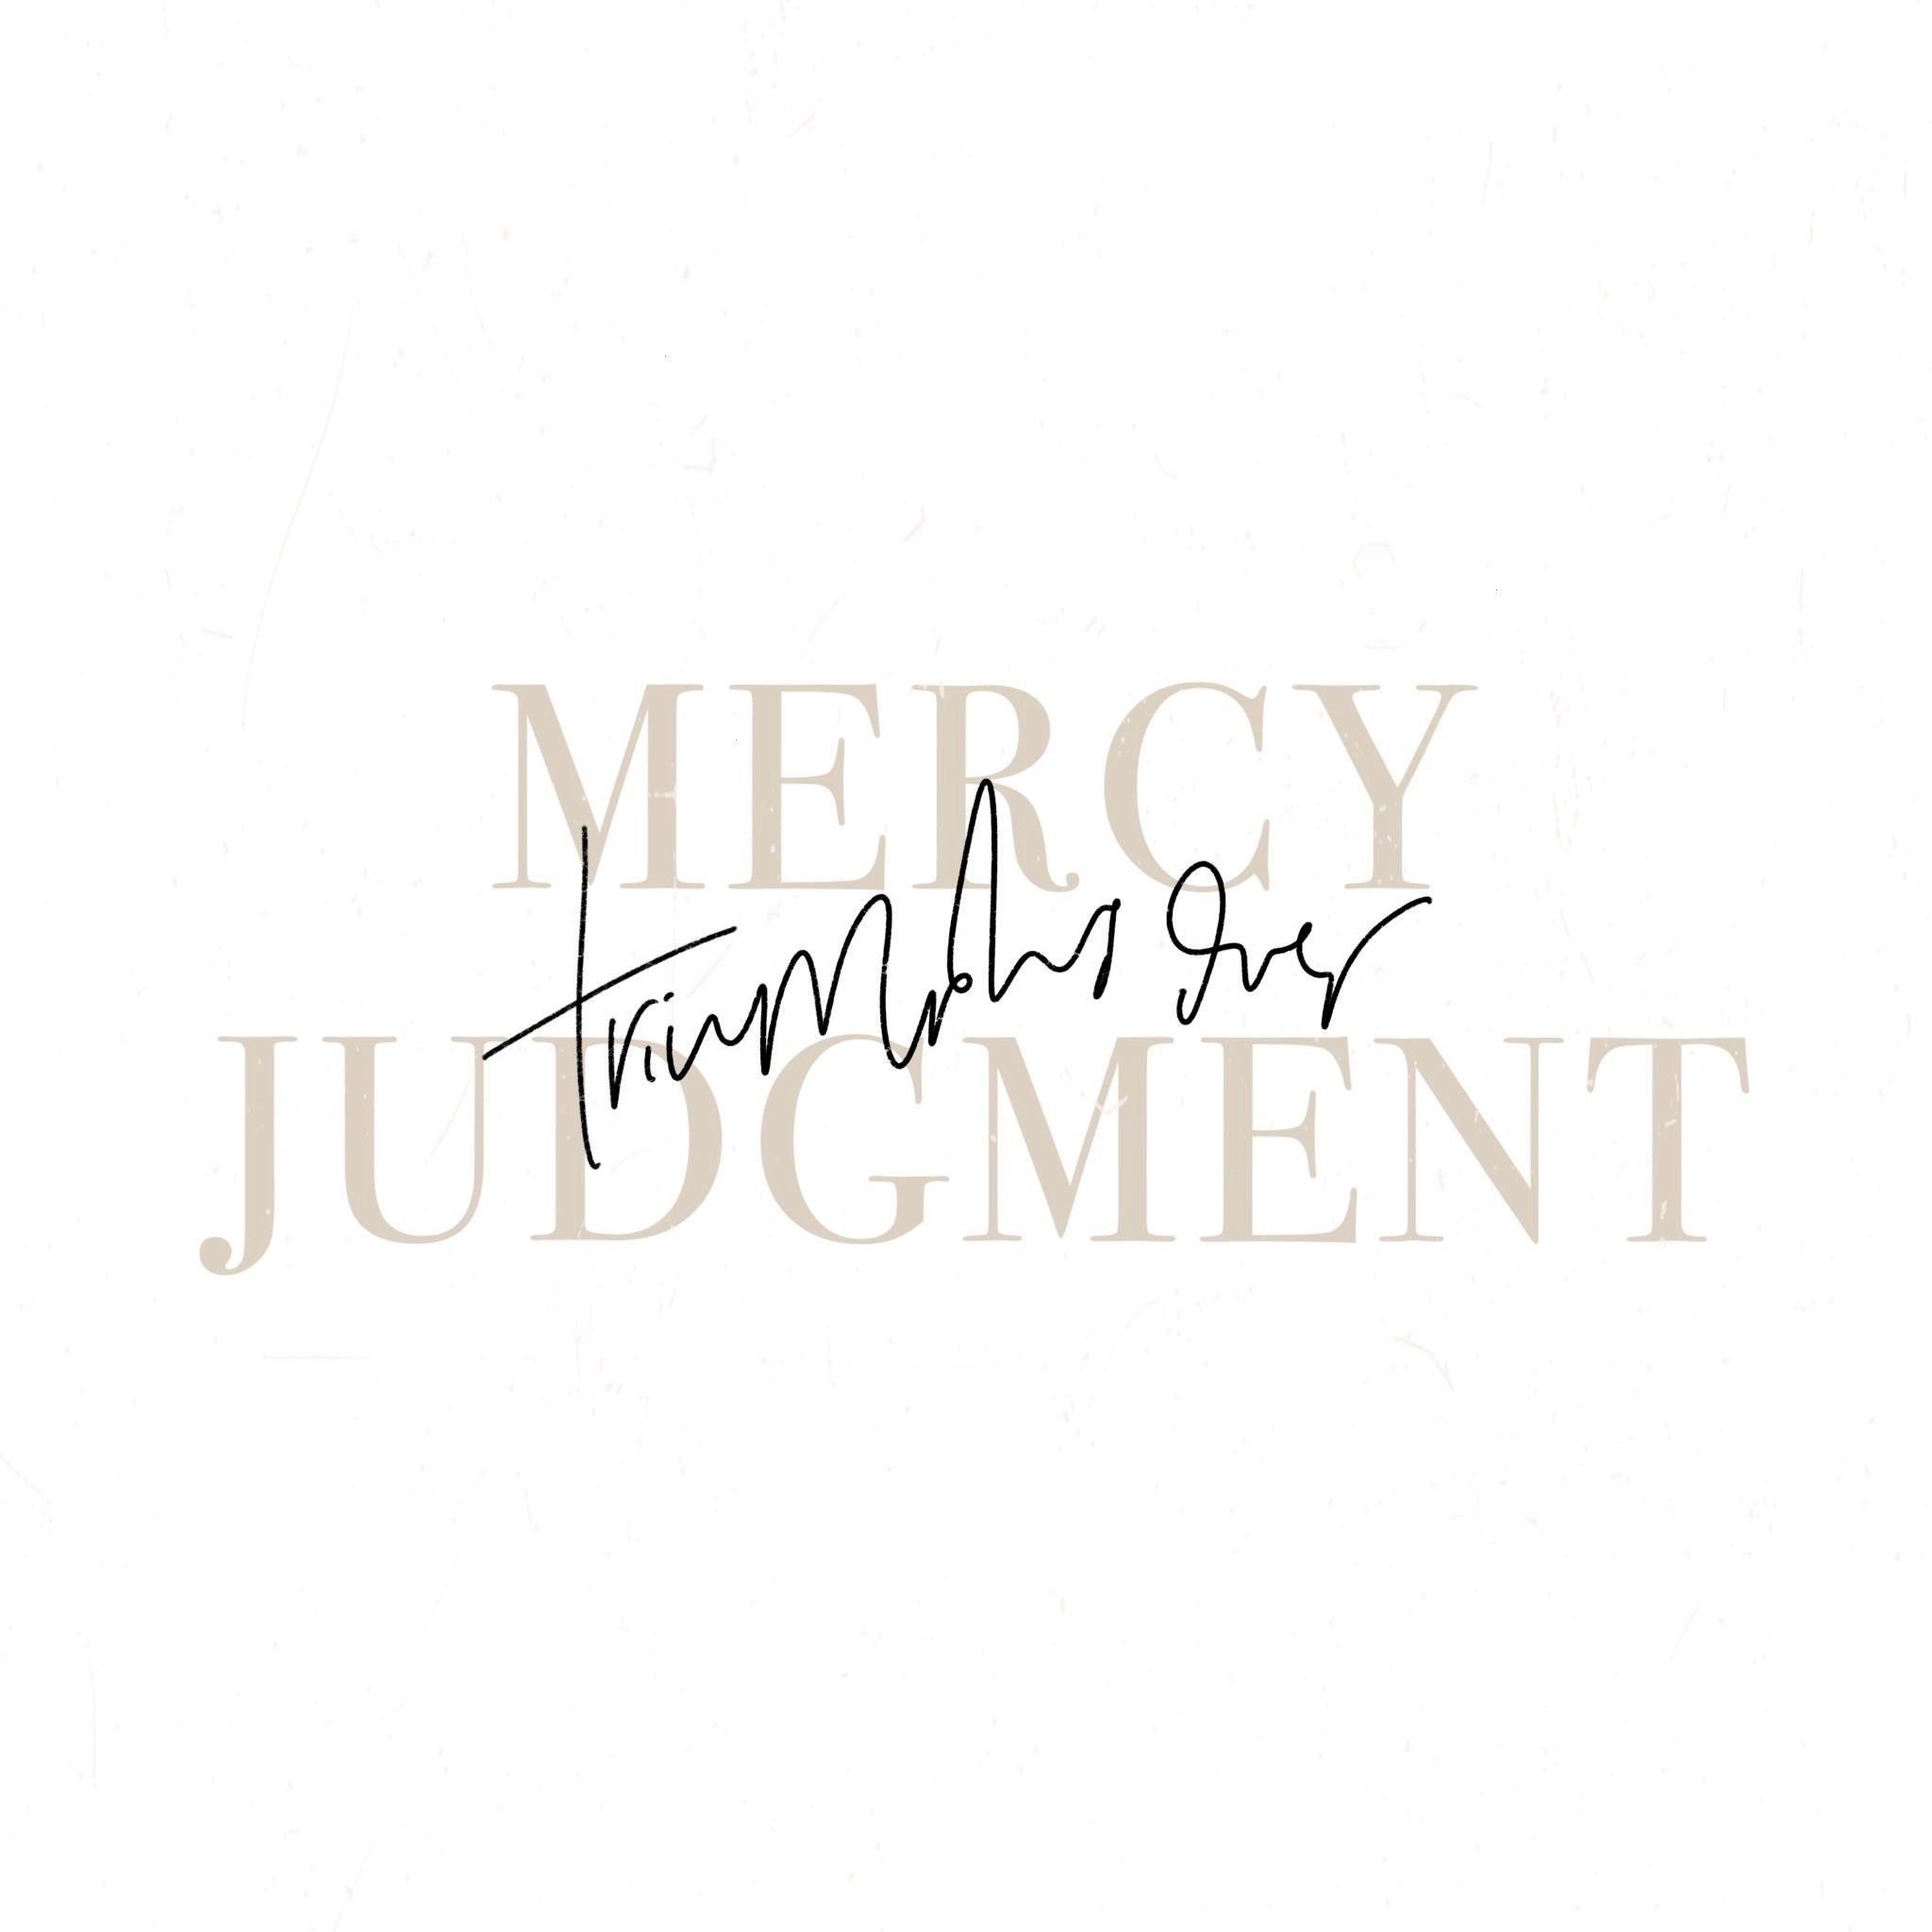 triumphs over judgment  thehoneydesigncojudgmentMercy triumphs over judgment  thehoneydesigncojudgment I rather have flowers in my hair than diamonds around my neck Love...